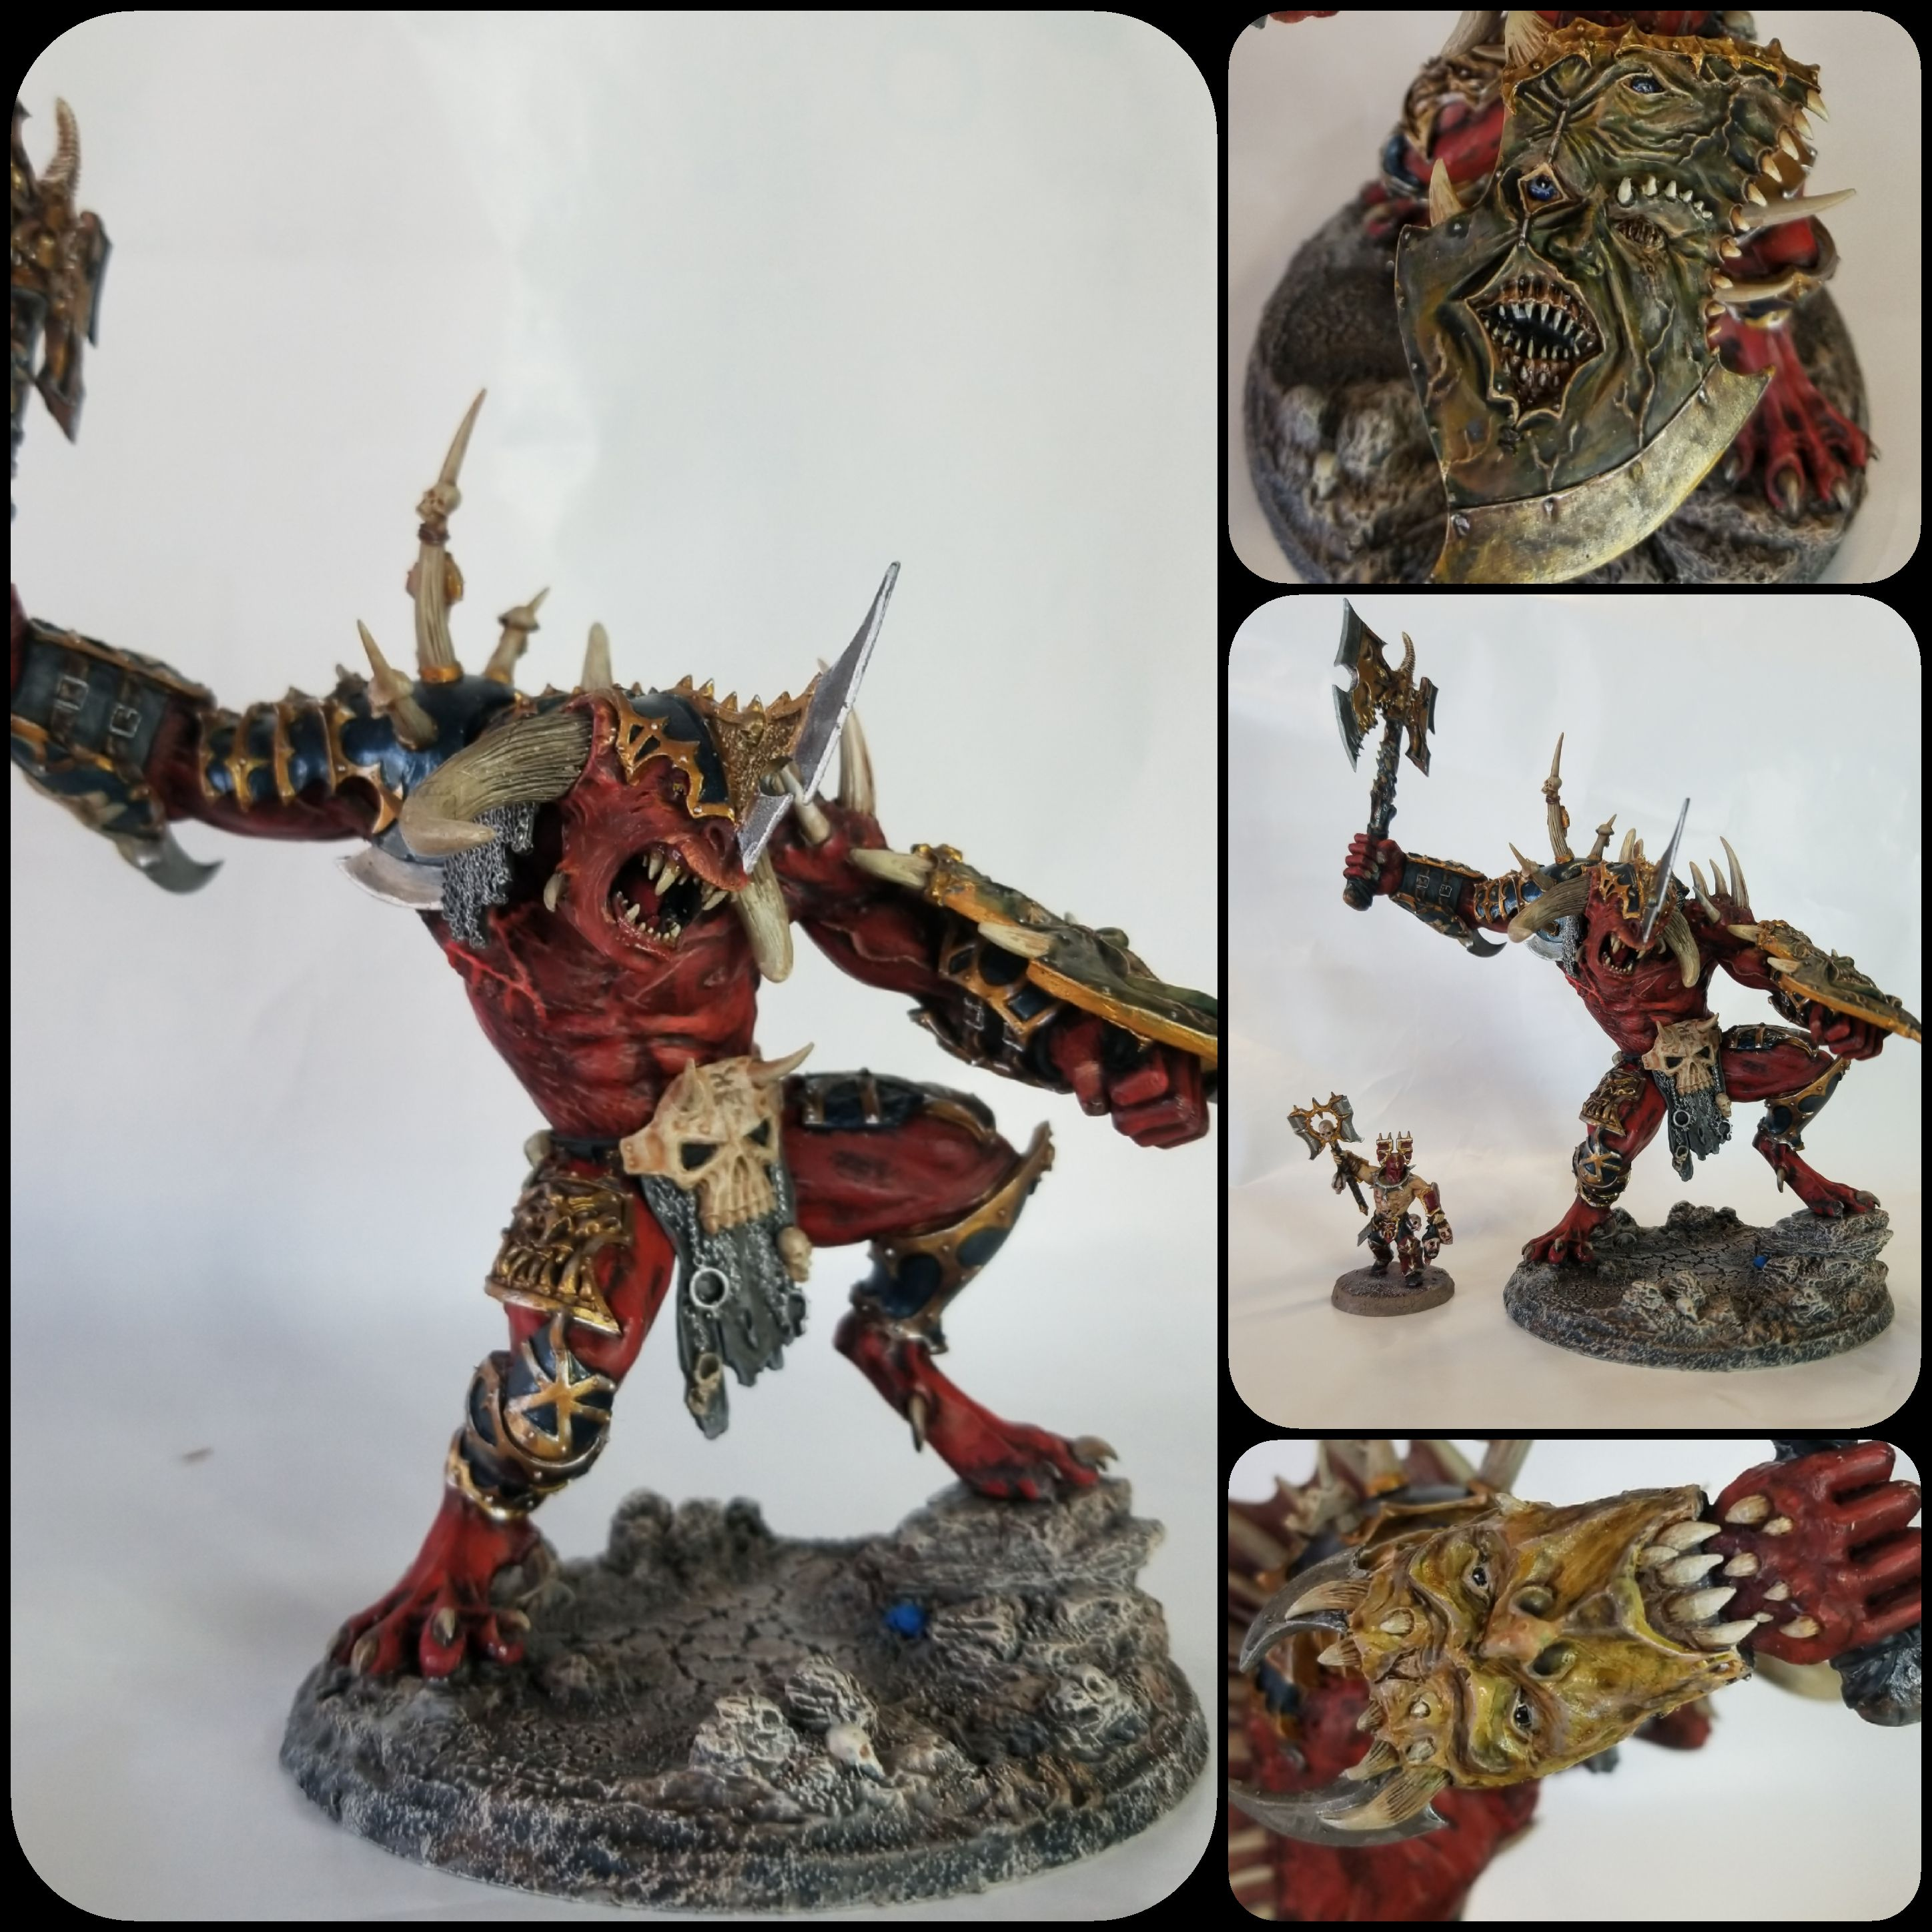 Mazarall the Butcher, Demon Prince of Khorne